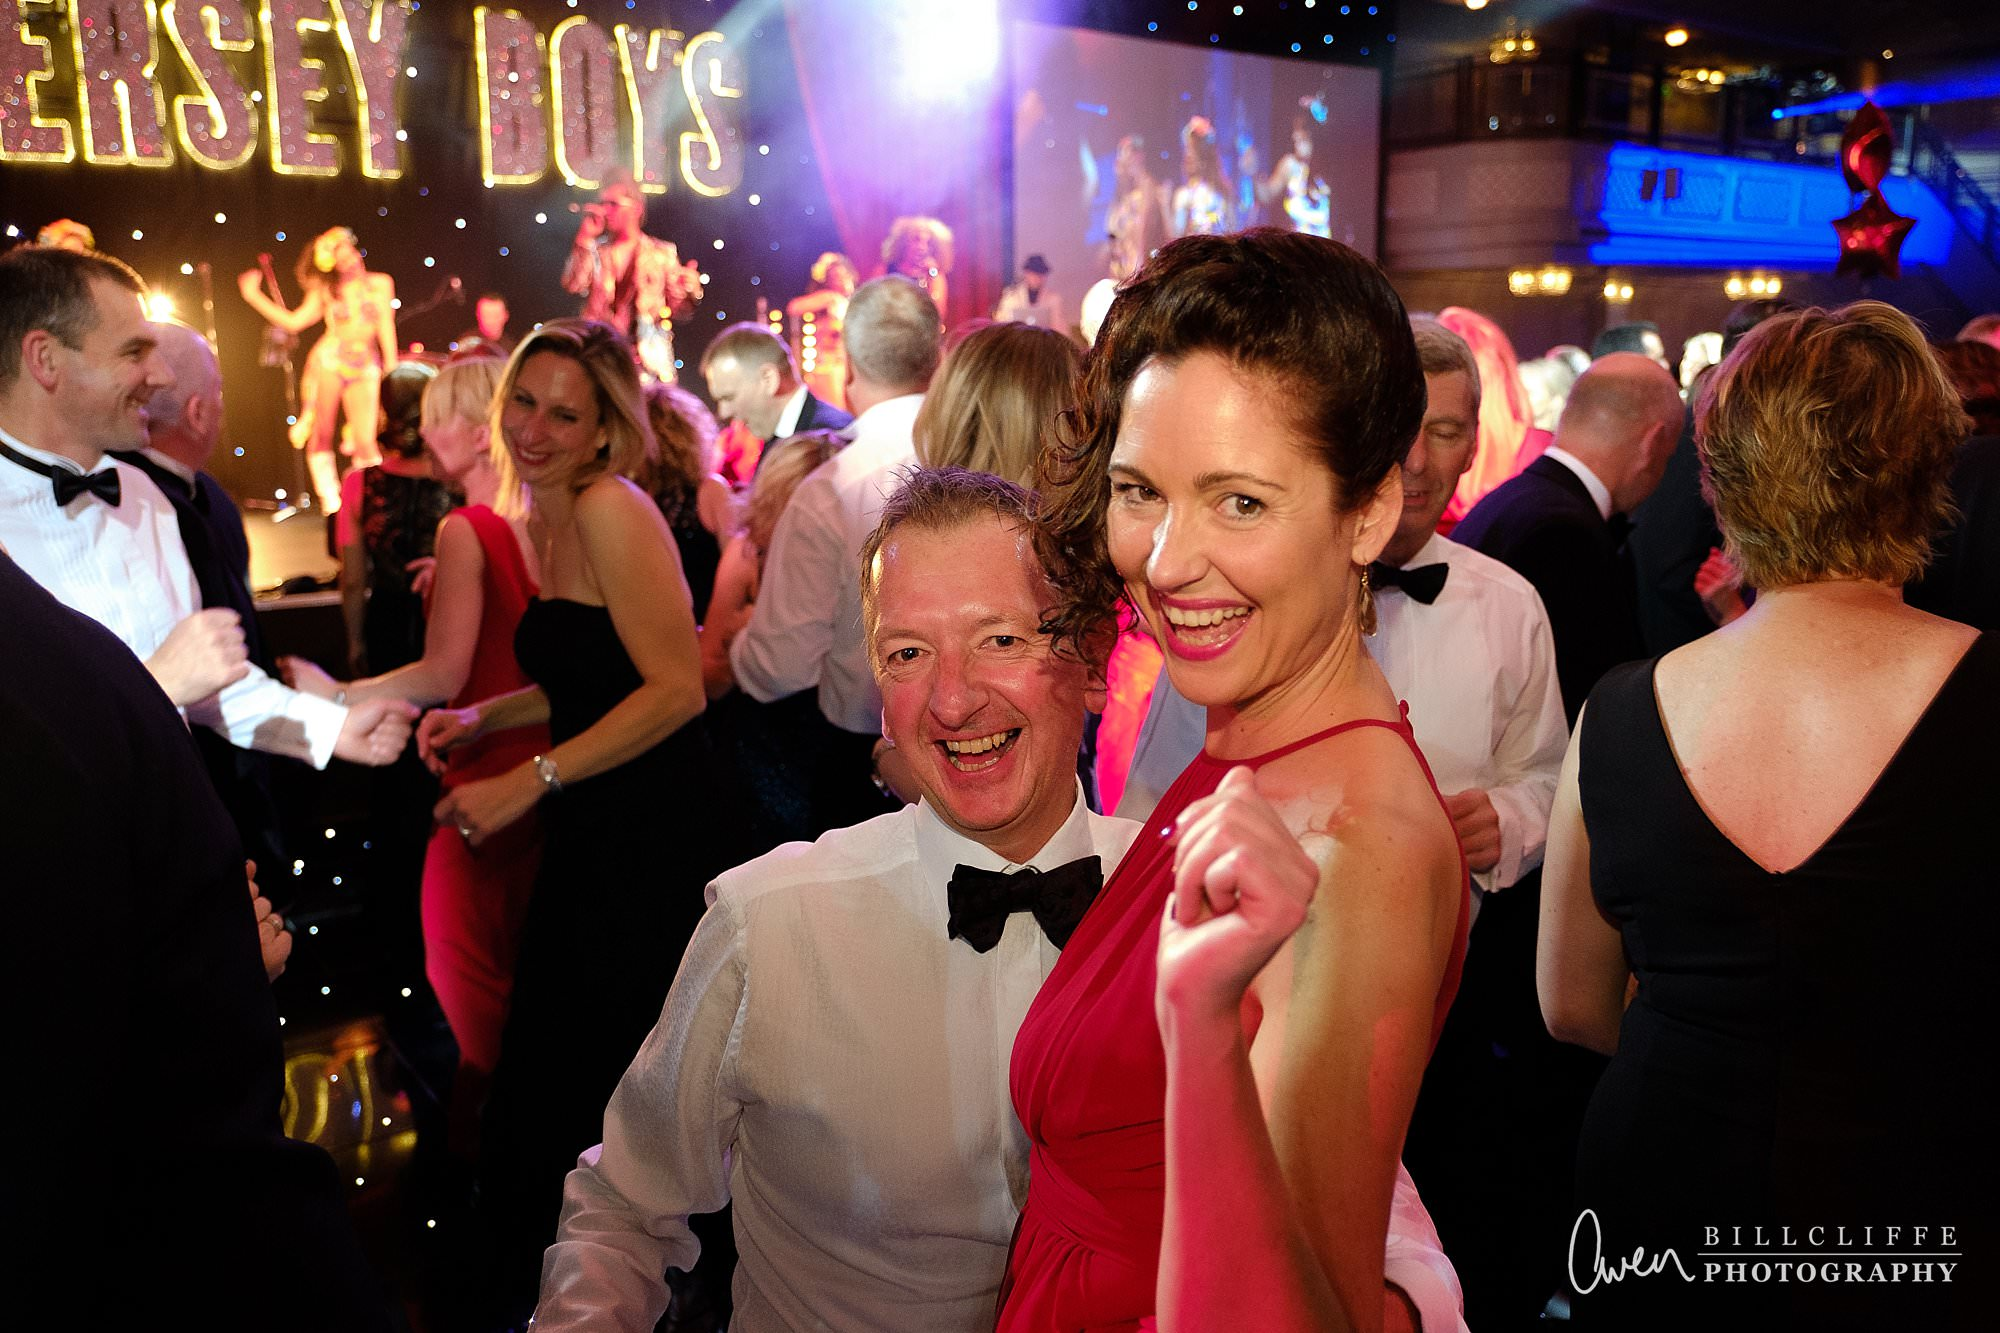 london event photographer park lane pb 025 - A Luxury Ball at Grosvenor House Park Lane